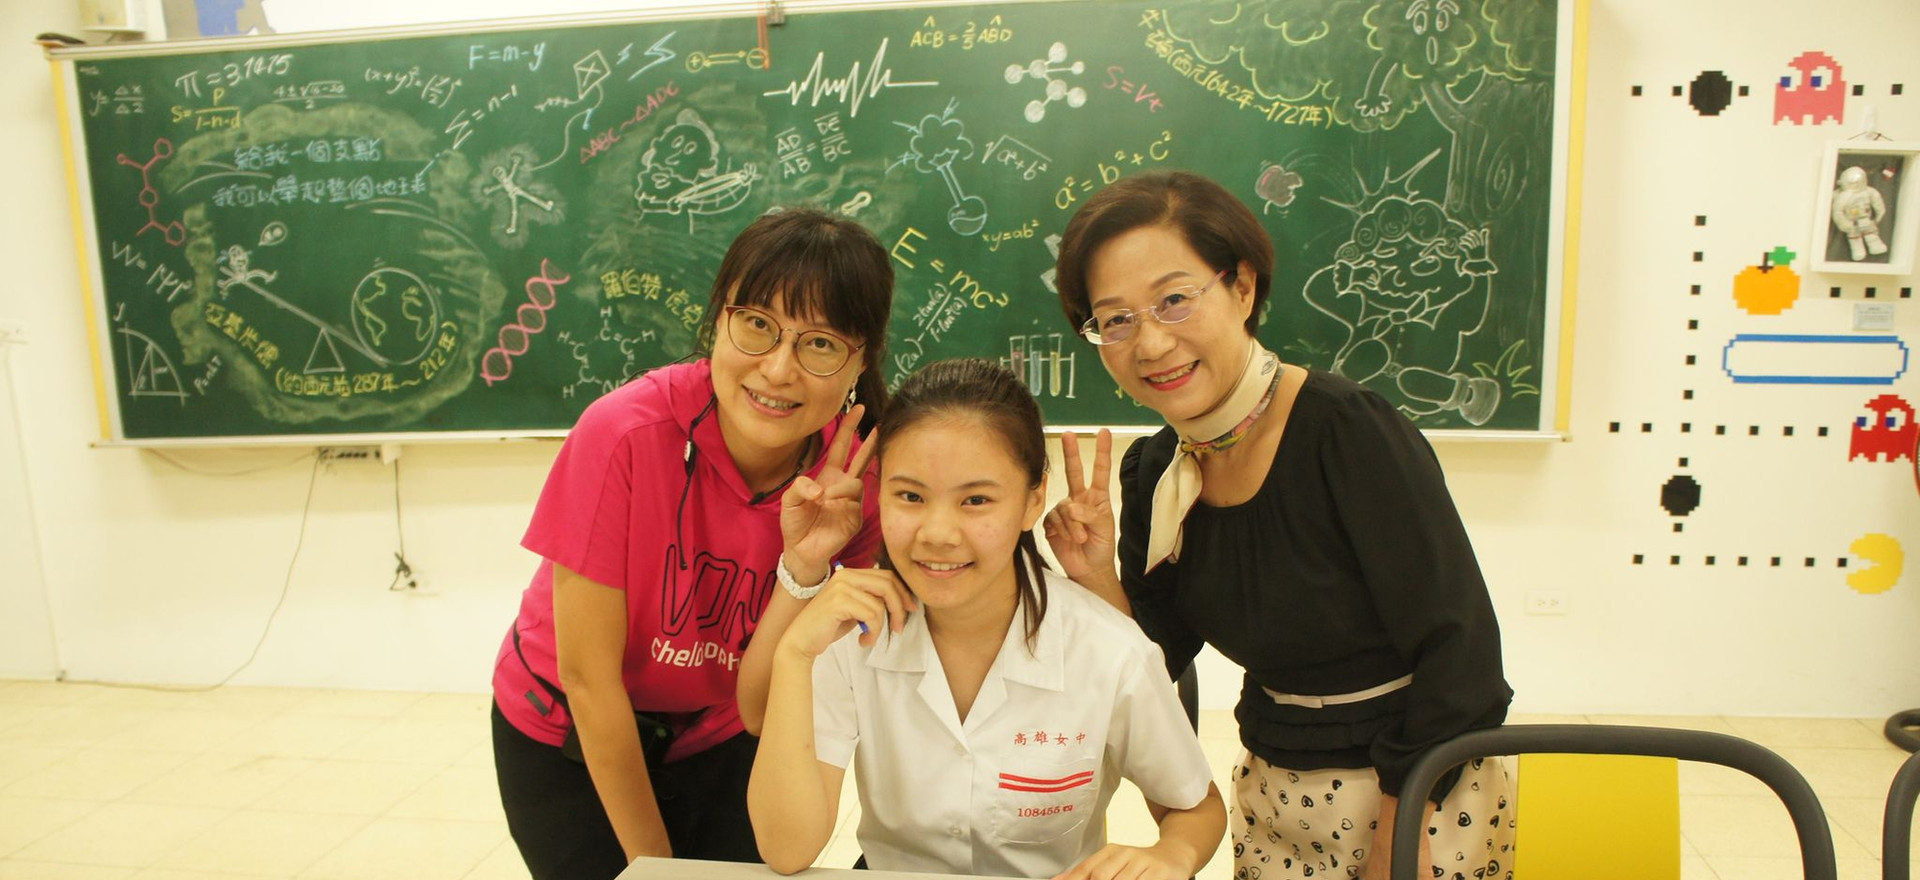 Amber signs books for Kaohsiung schools!